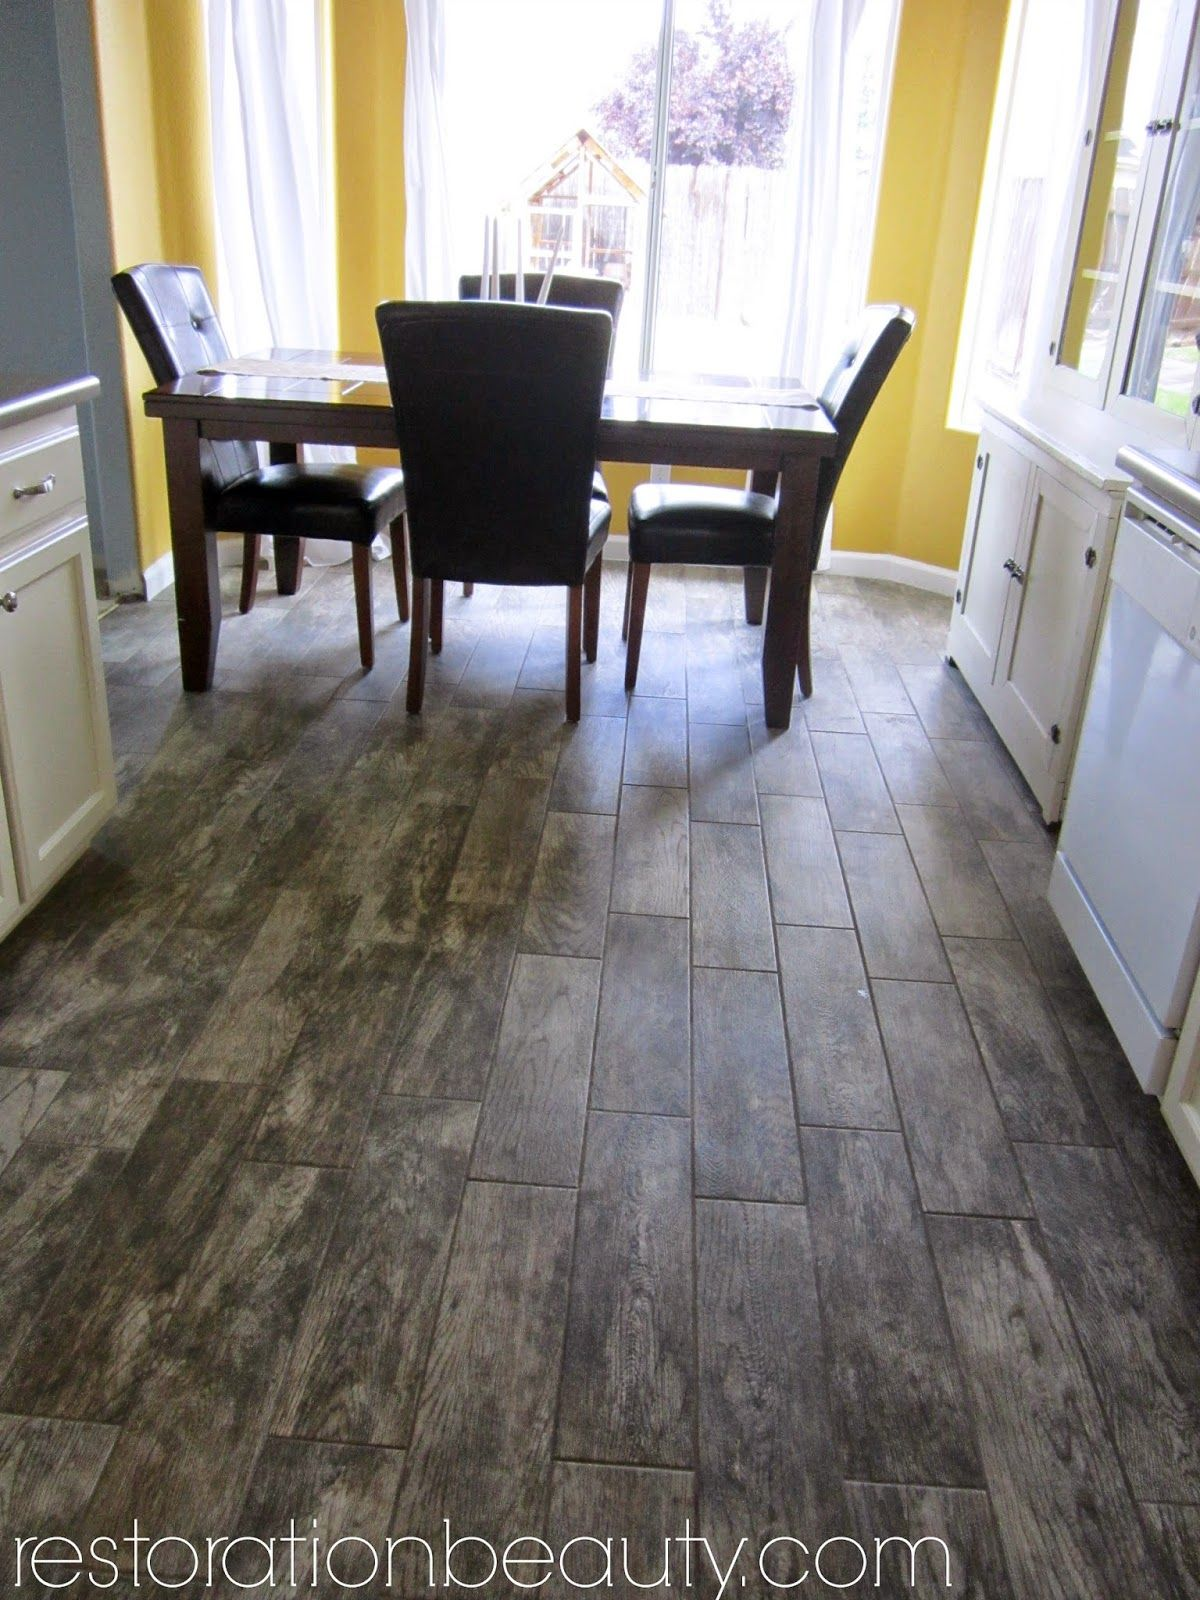 Faux Wood Tile Flooring In The Kitchen Porcelain Tile Porcelain